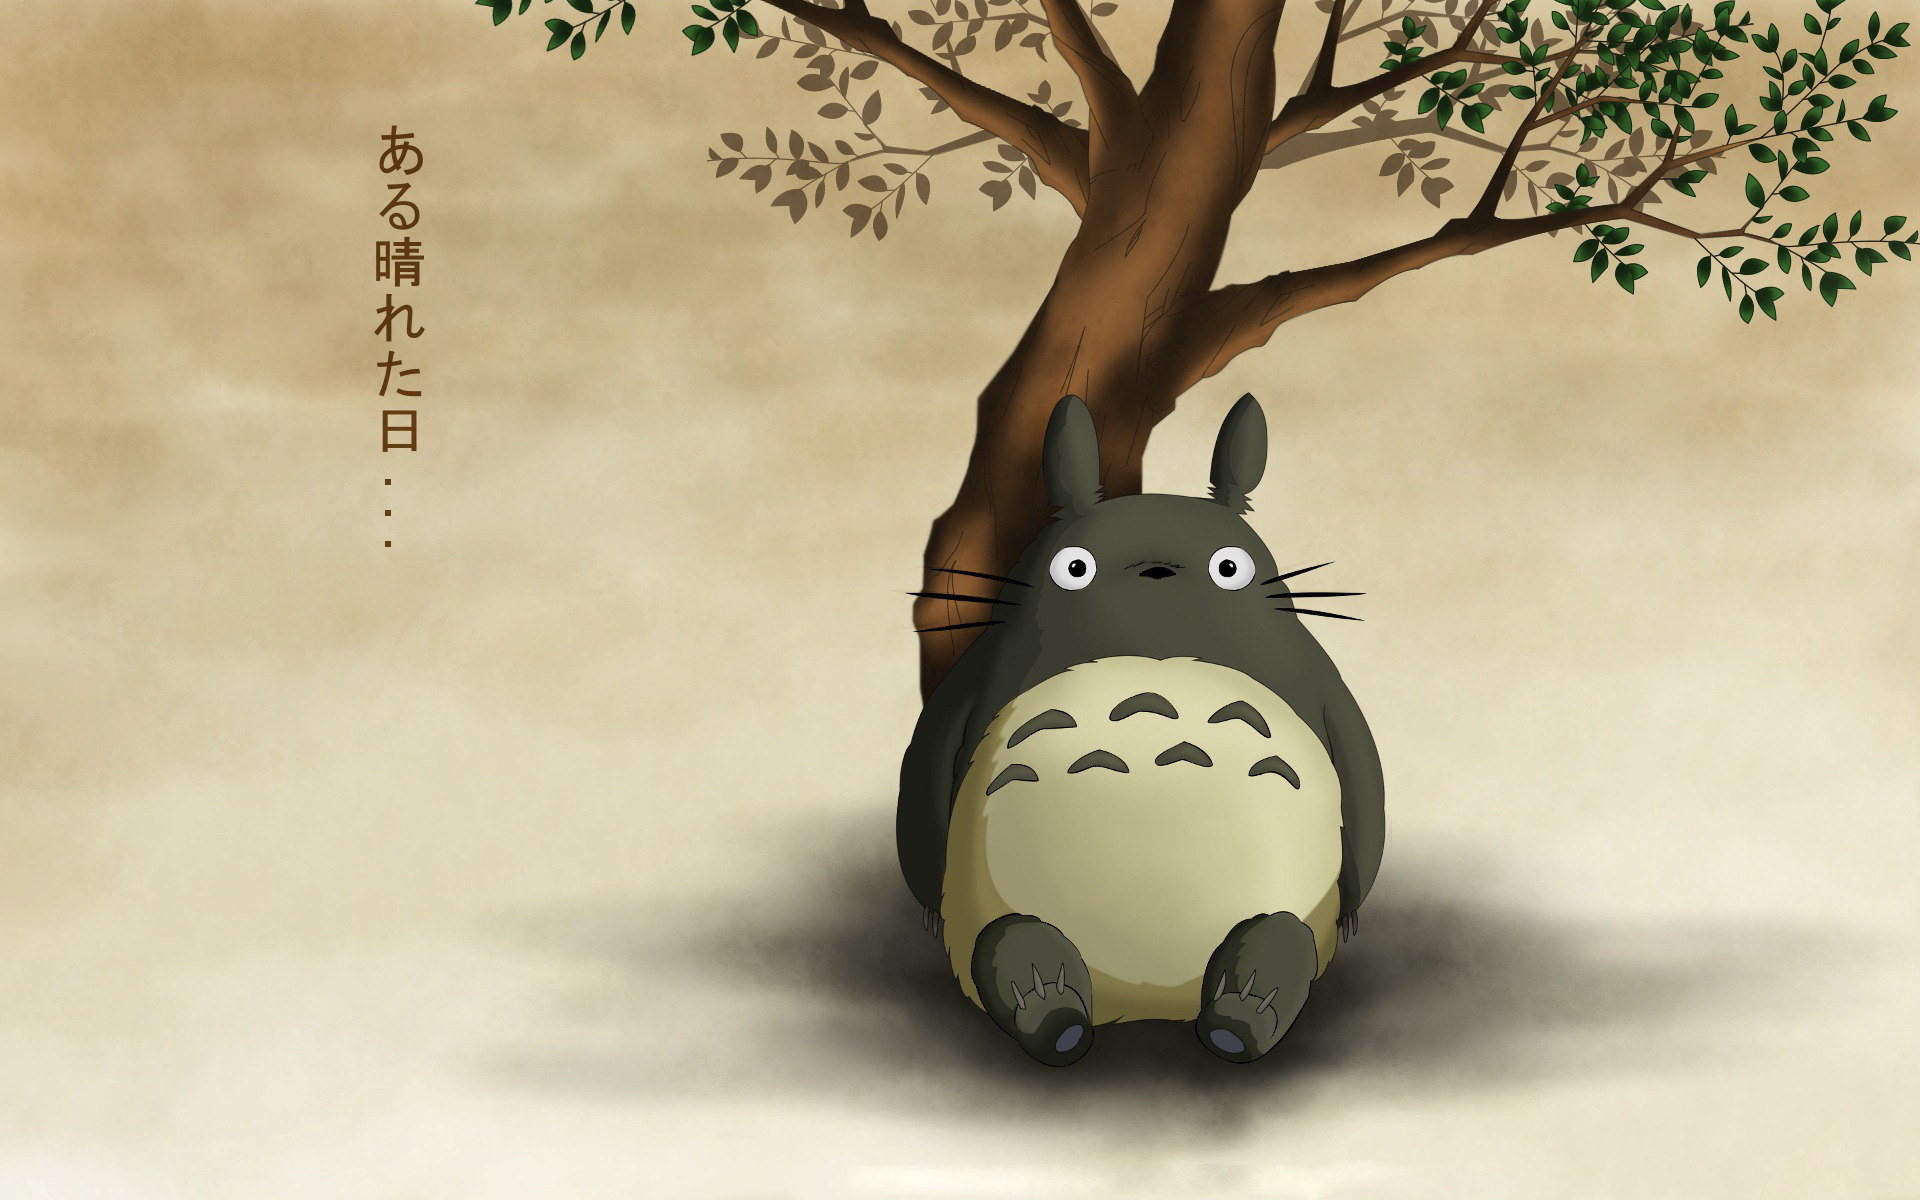 21400 download wallpaper Anime, Cartoon, Trees screensavers and pictures for free